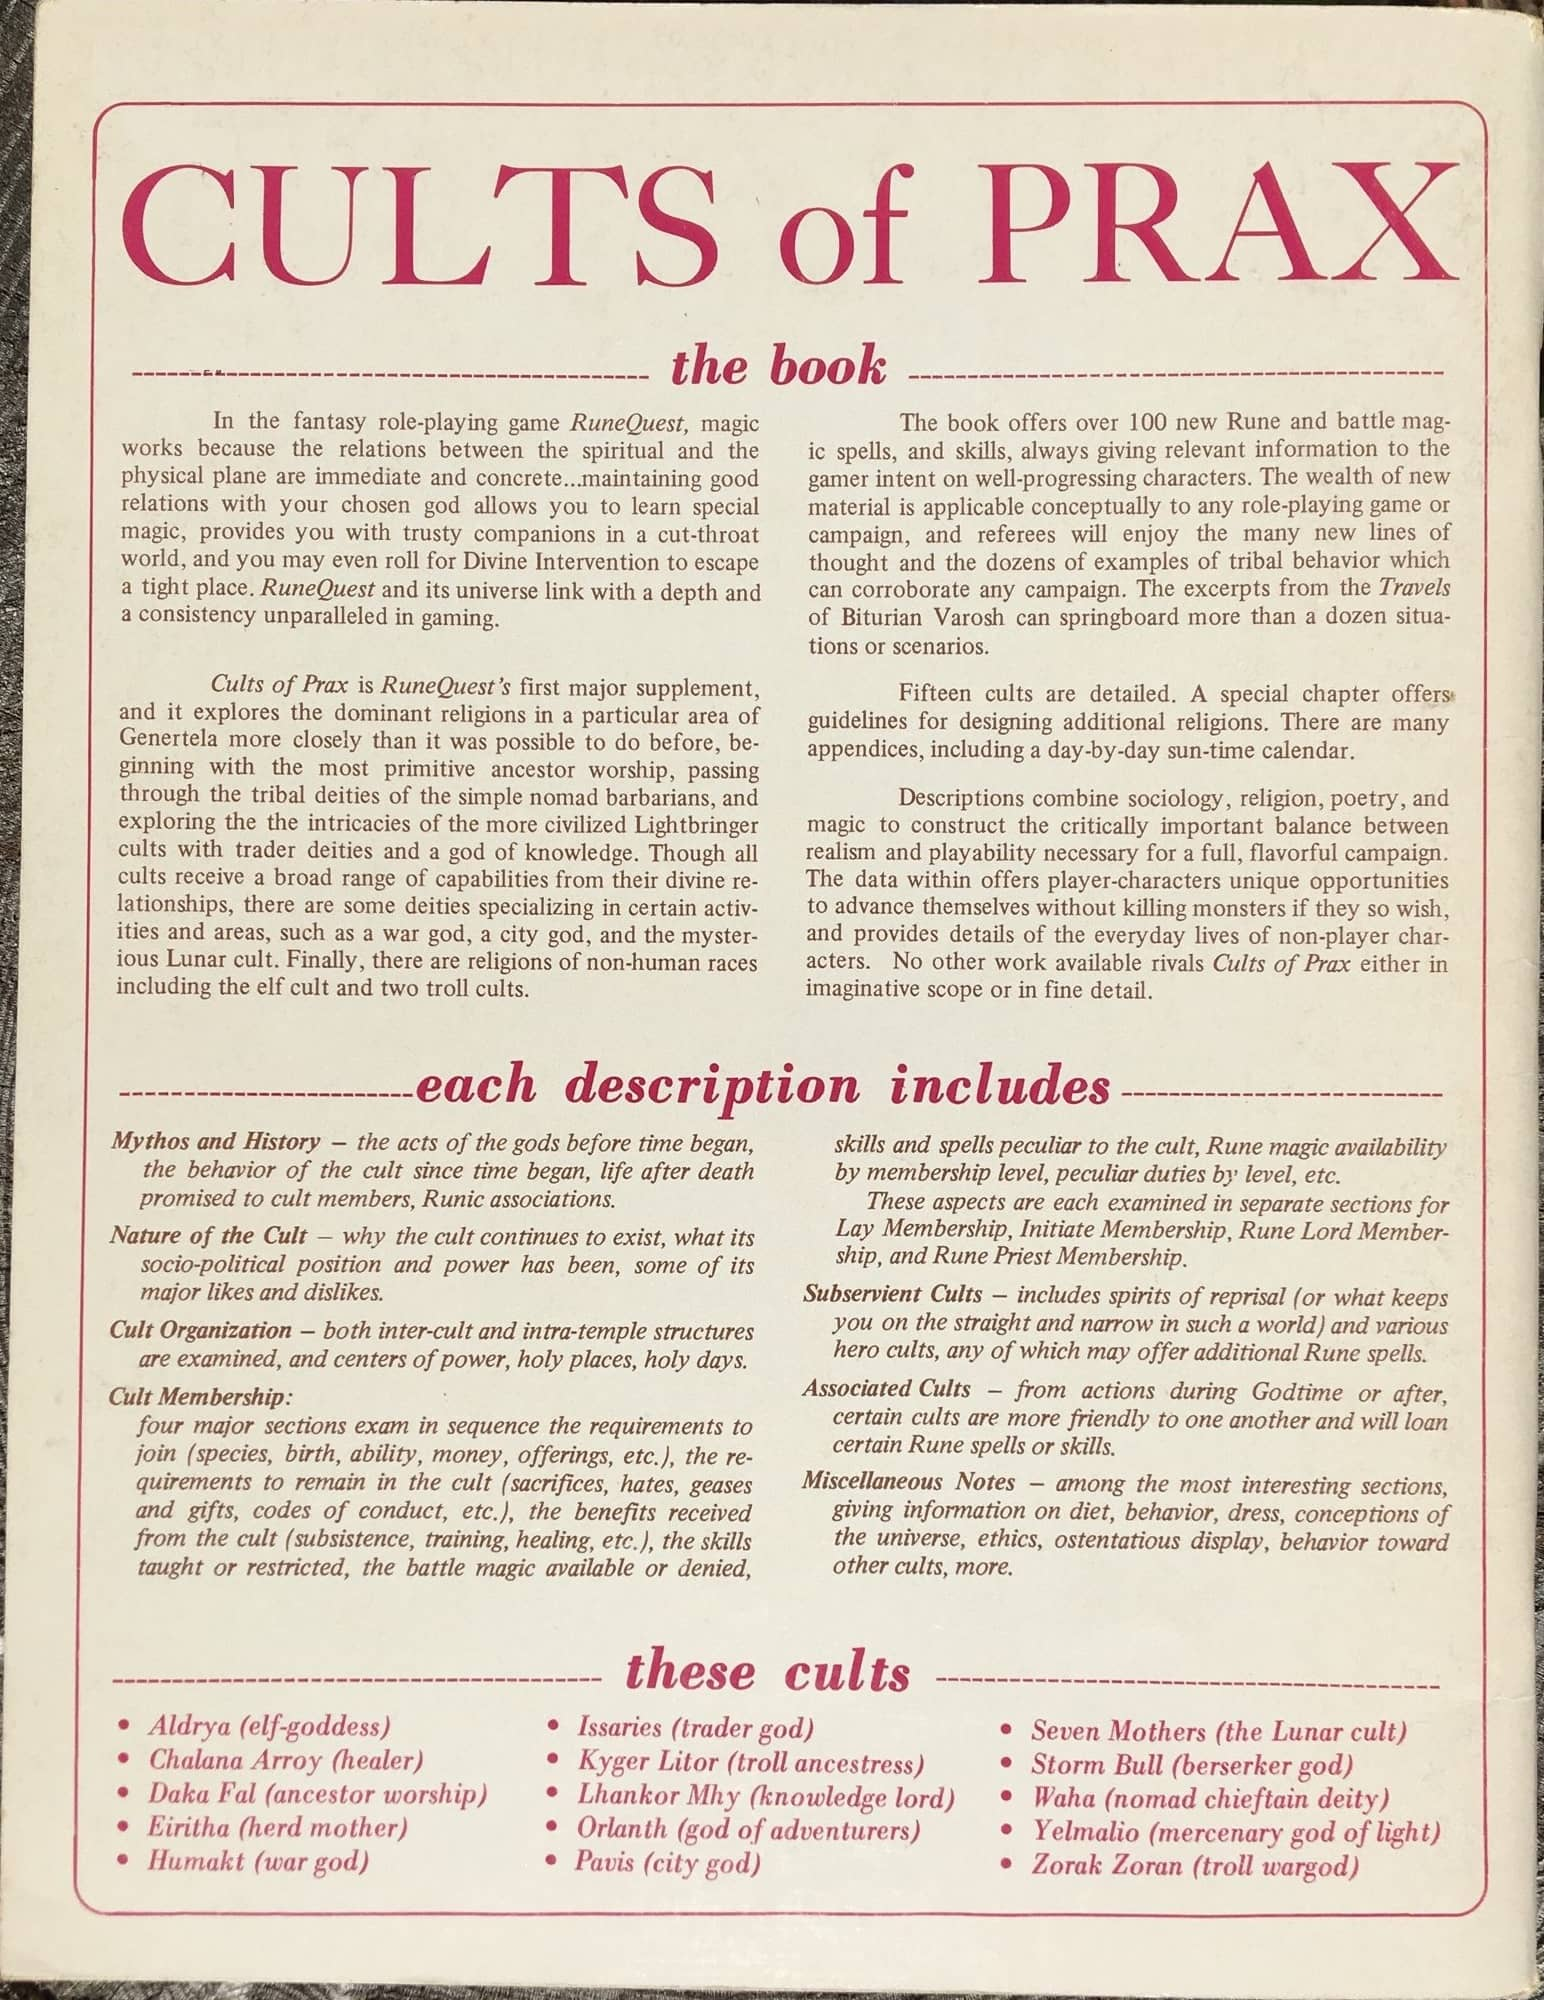 Cults of Prax: Then and Now